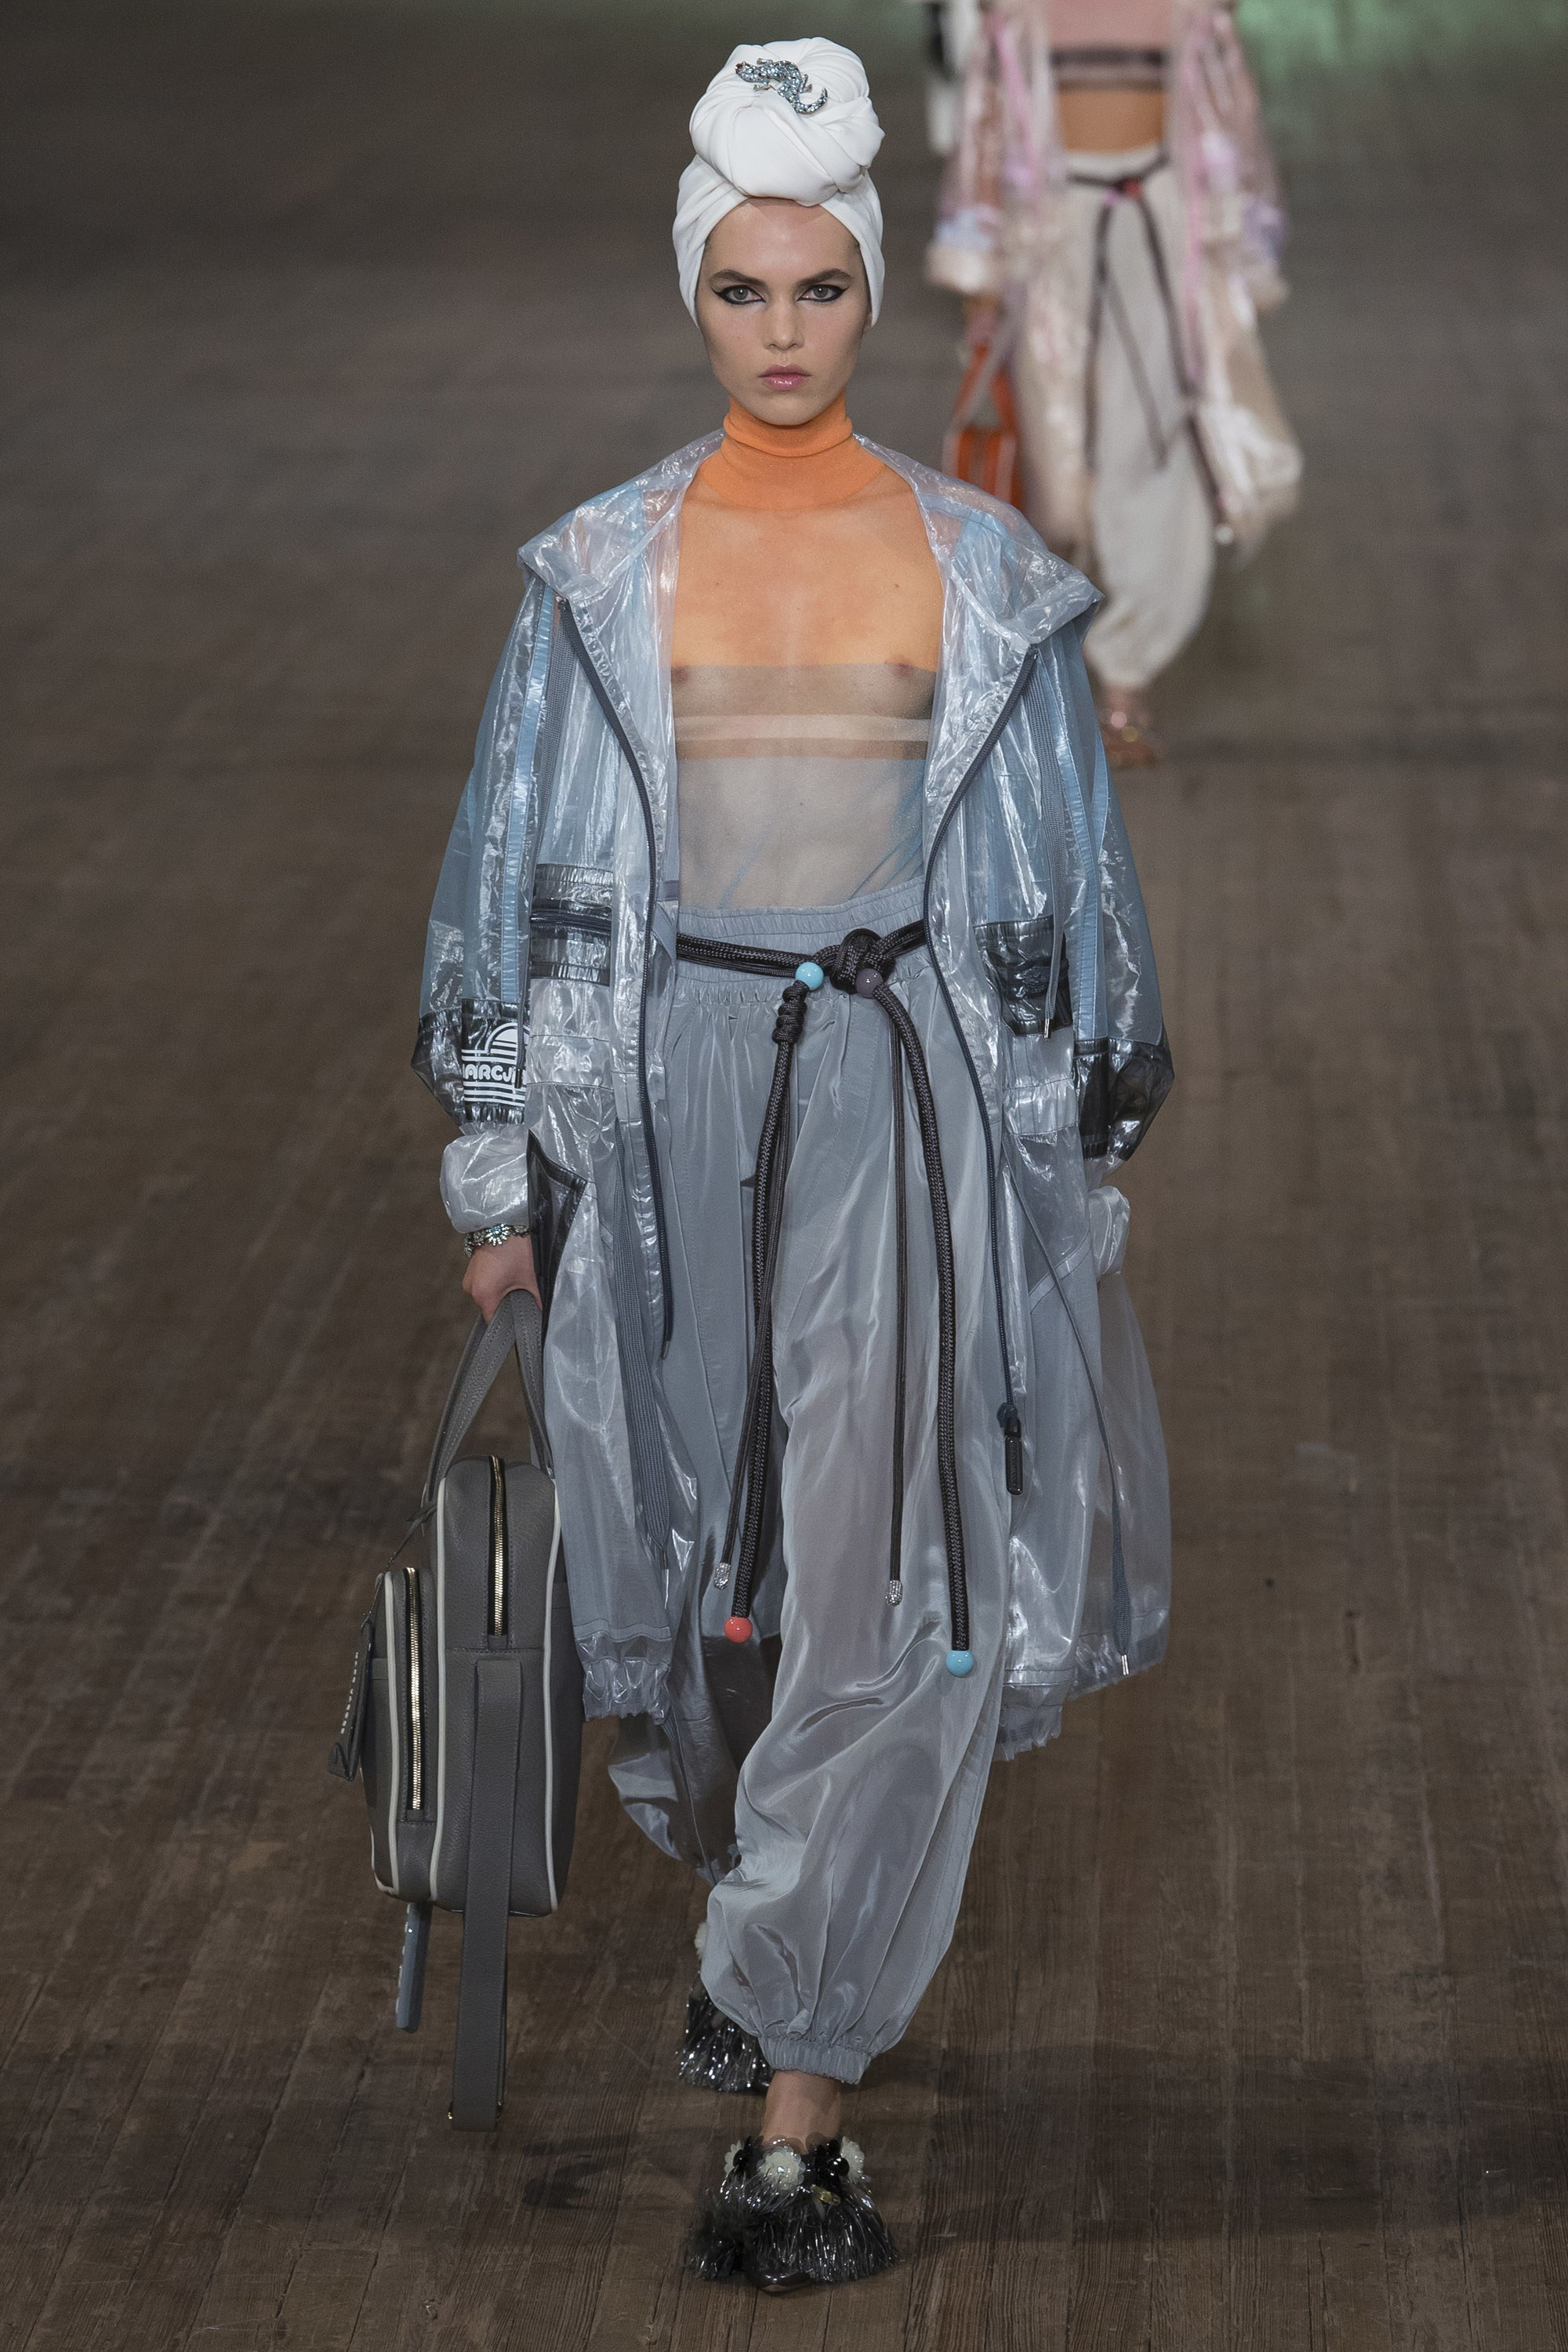 marc jacobs xuan he 2018 05